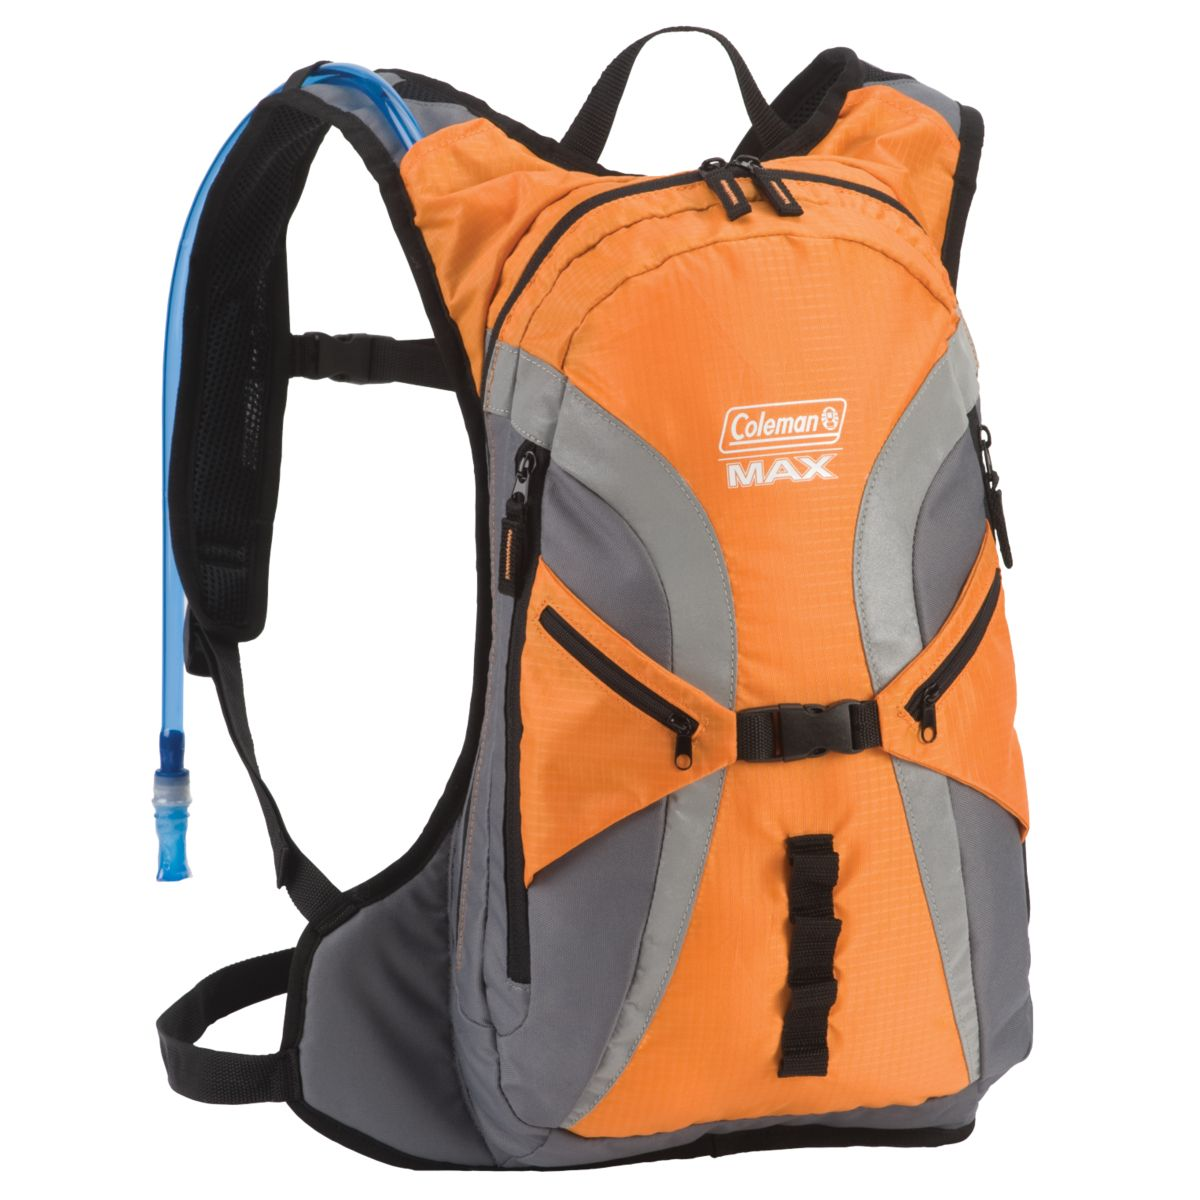 Hiking Backpack With Water SBYuA5fq